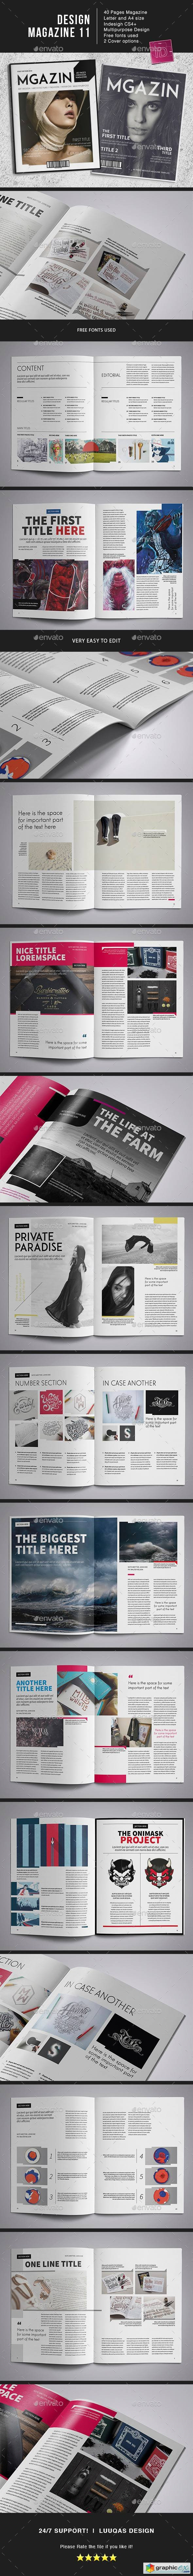 Design Magazine 11 Template